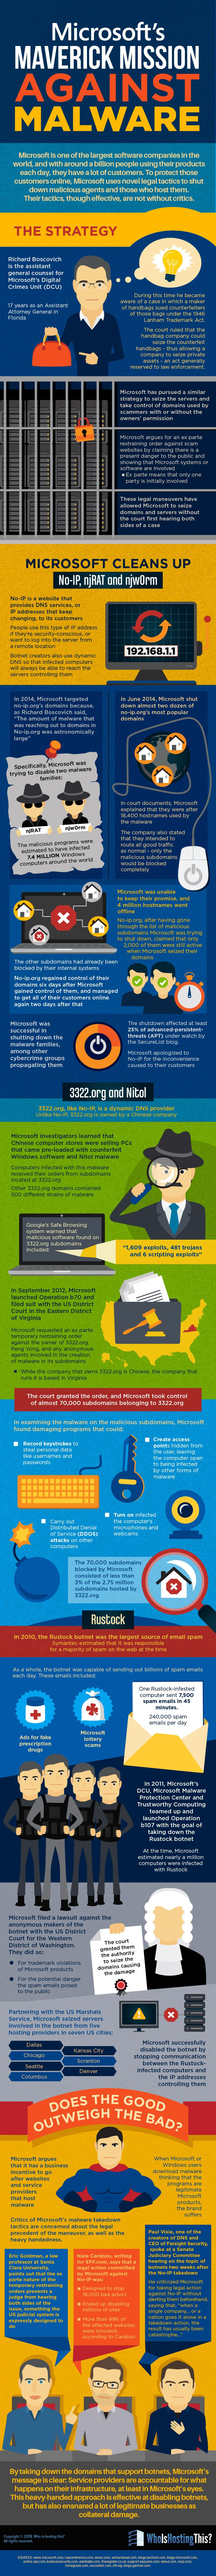 Microsoft's Maverick Mission Against Malware #infographic